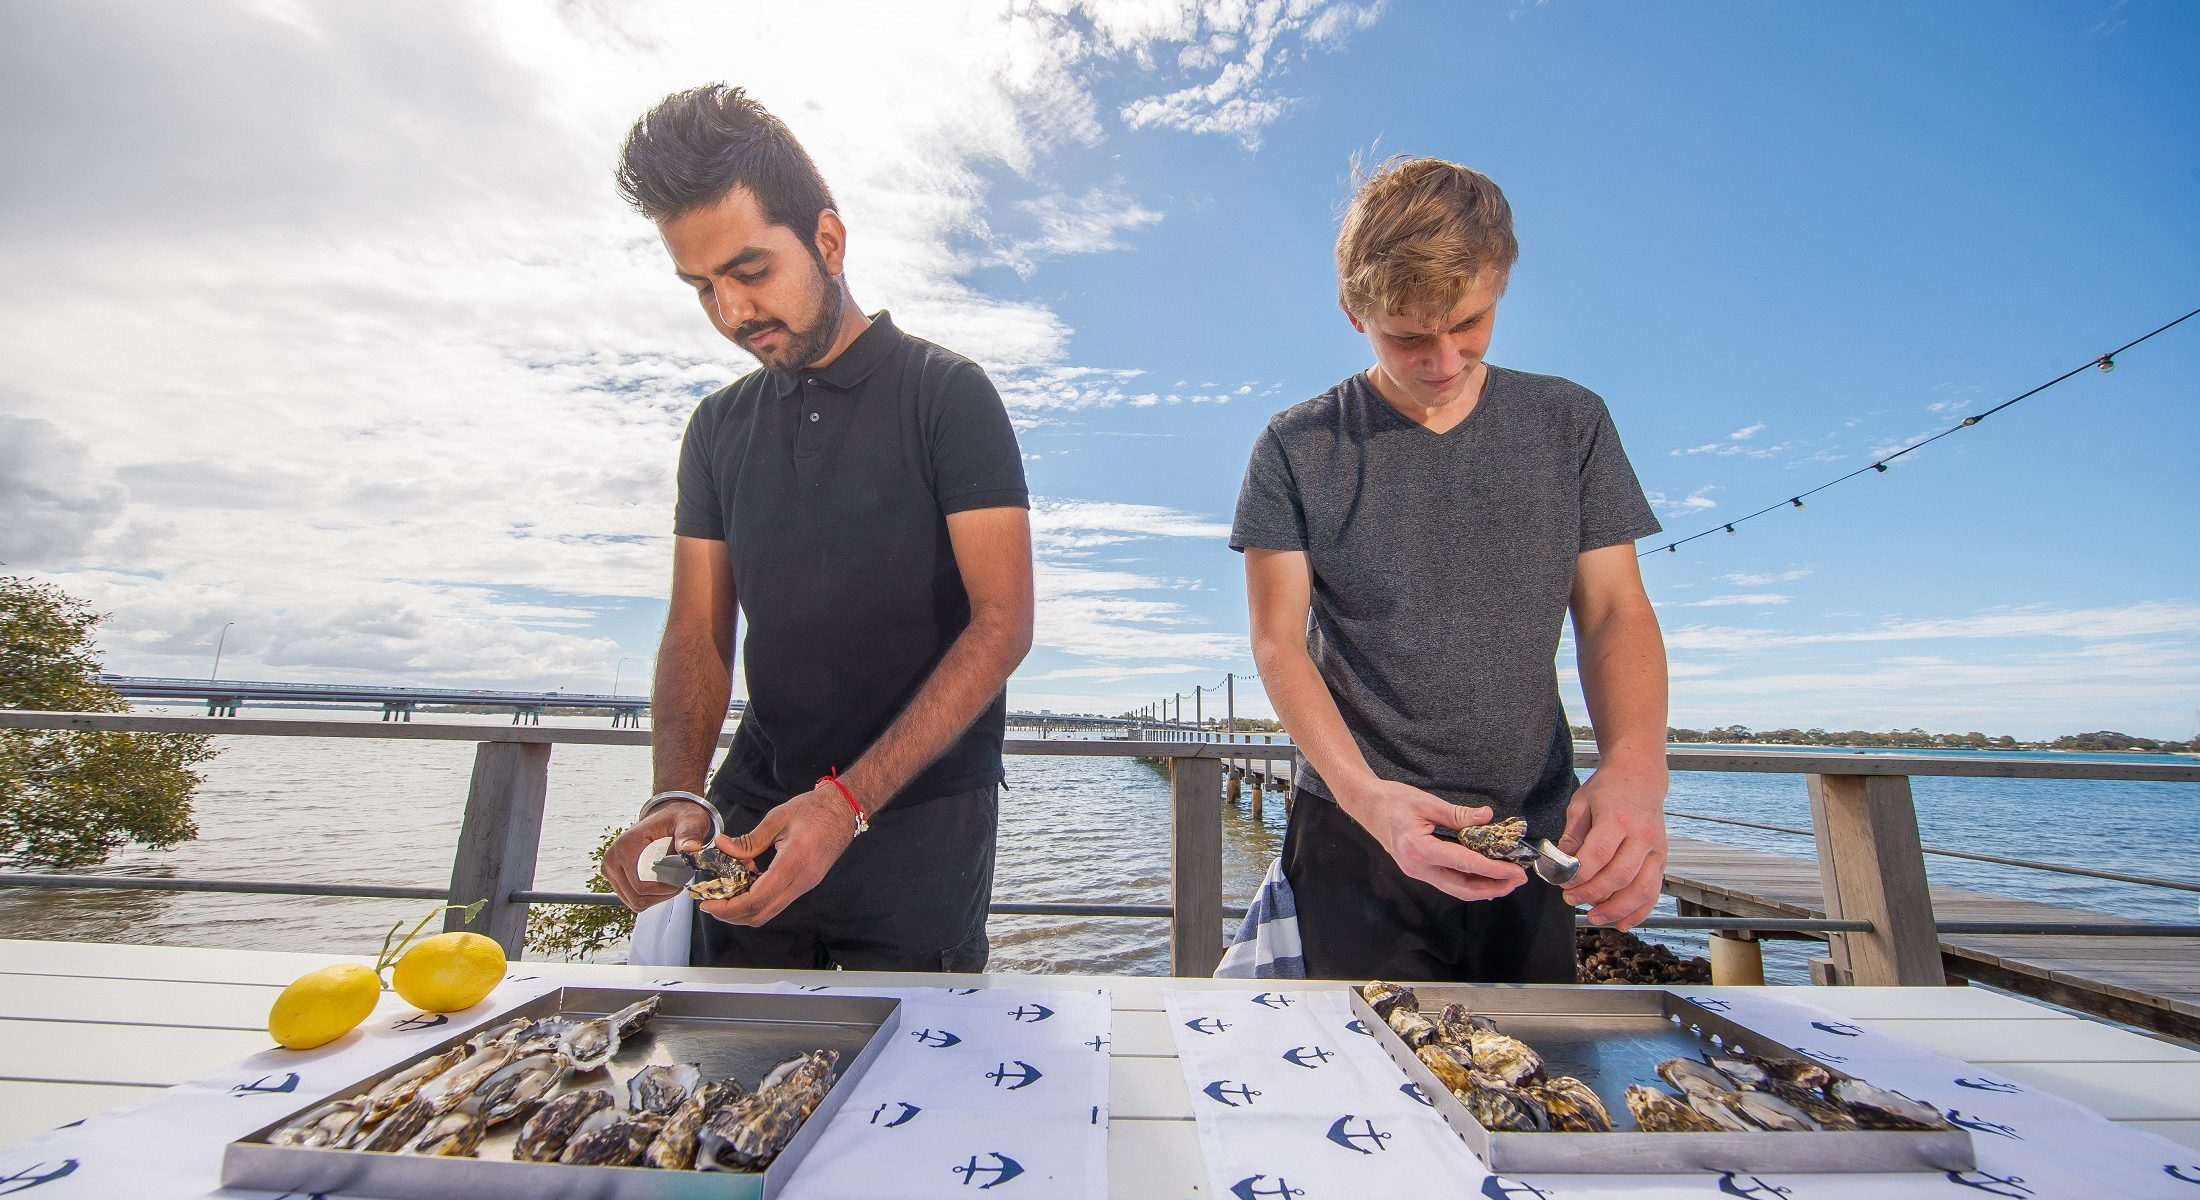 Have a shucking good time at the Oyster Festival at Sandstone Point Hotel